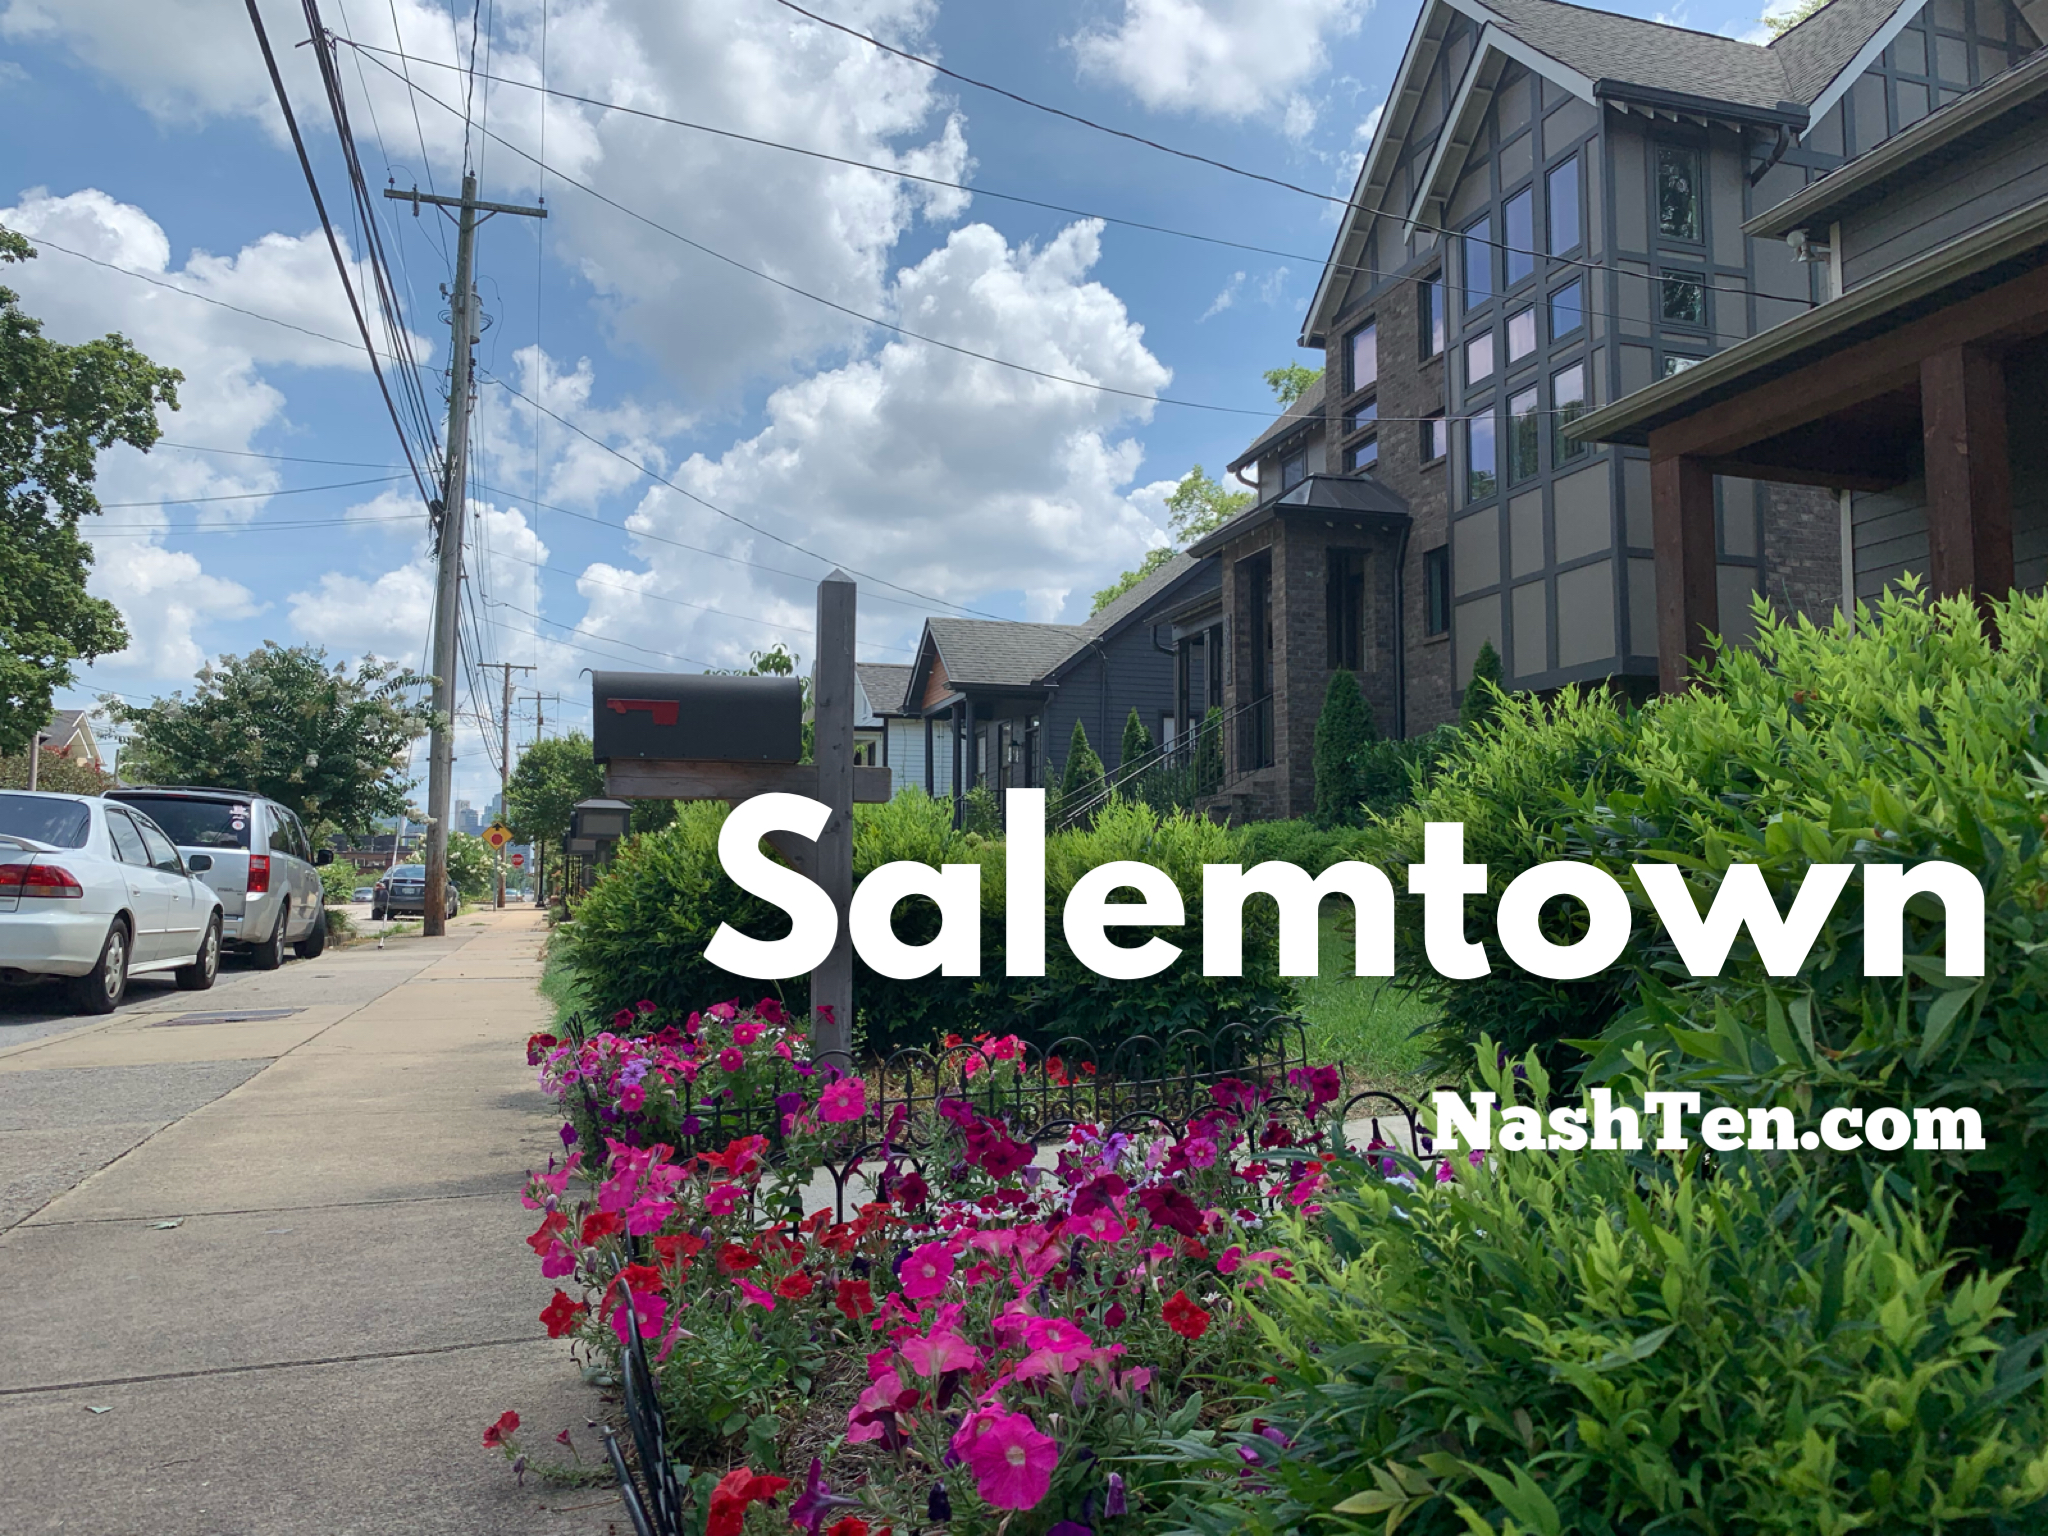 Salemtown in Downtown Nashville TN